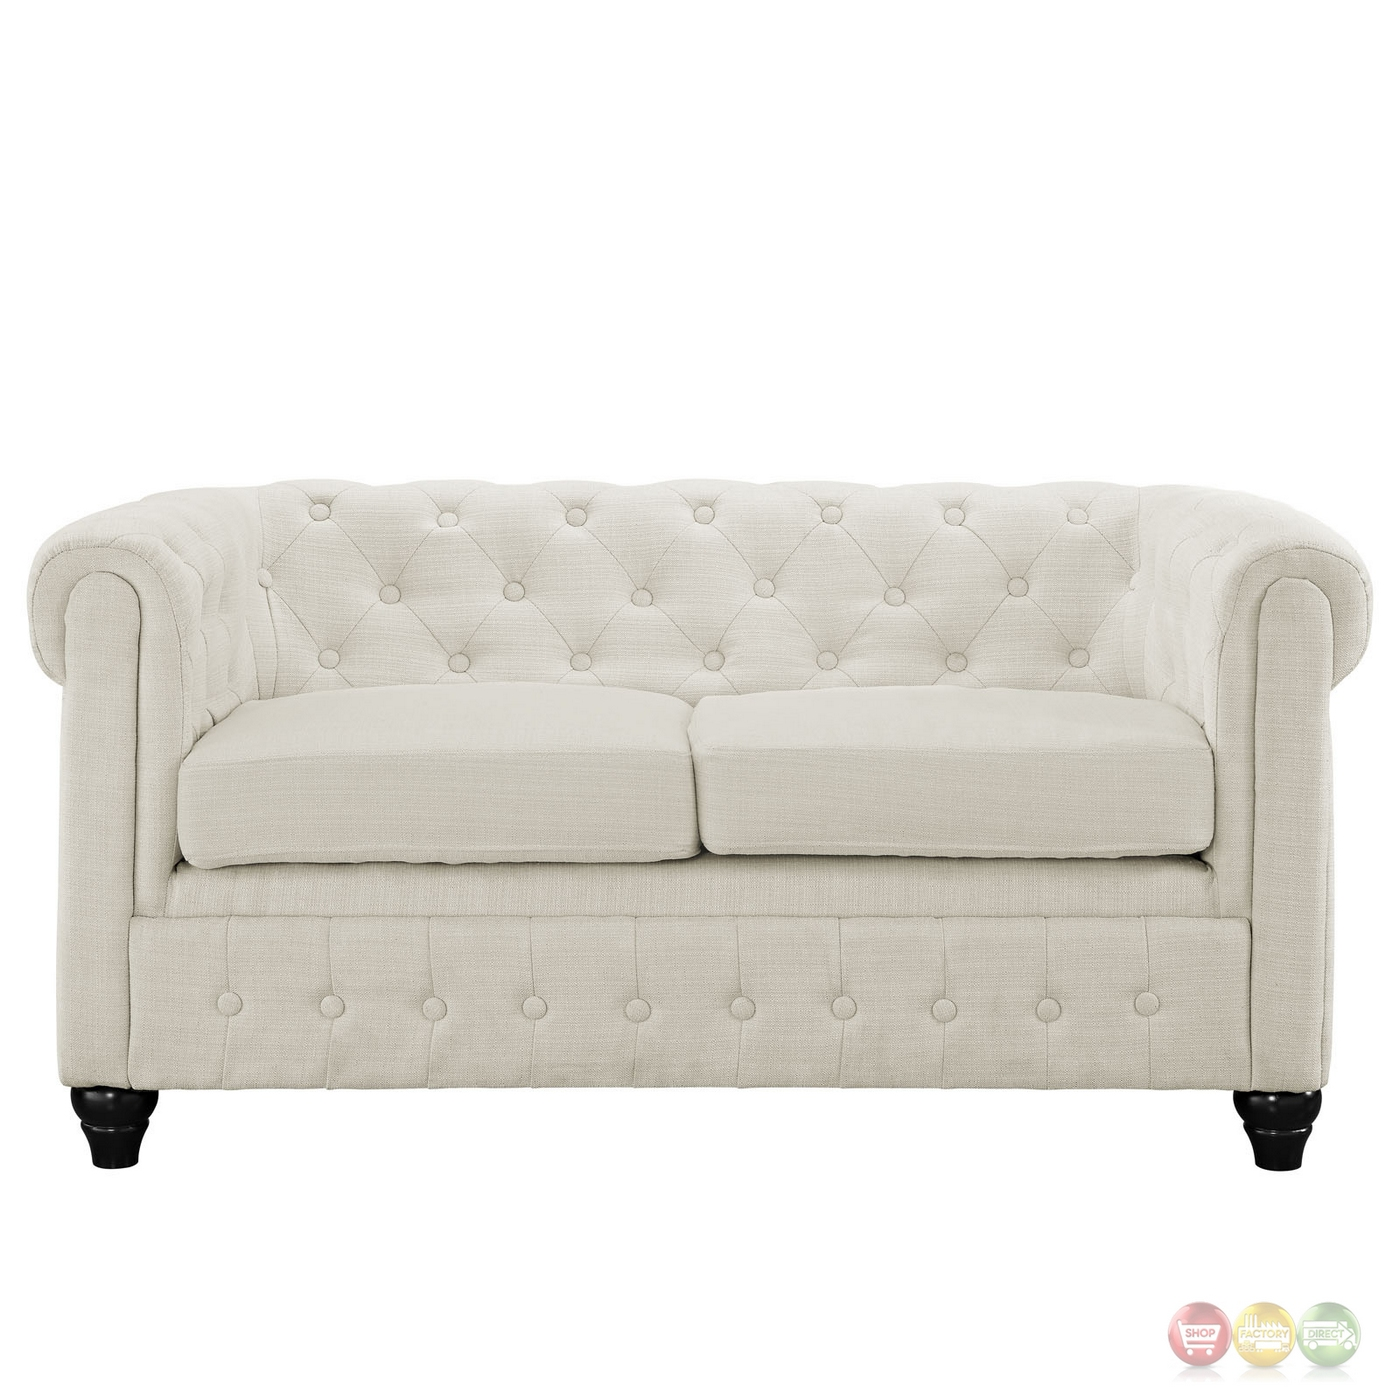 Earl Contemporary Button Tufted Upholstered Loveseat W Wood Feet Beige